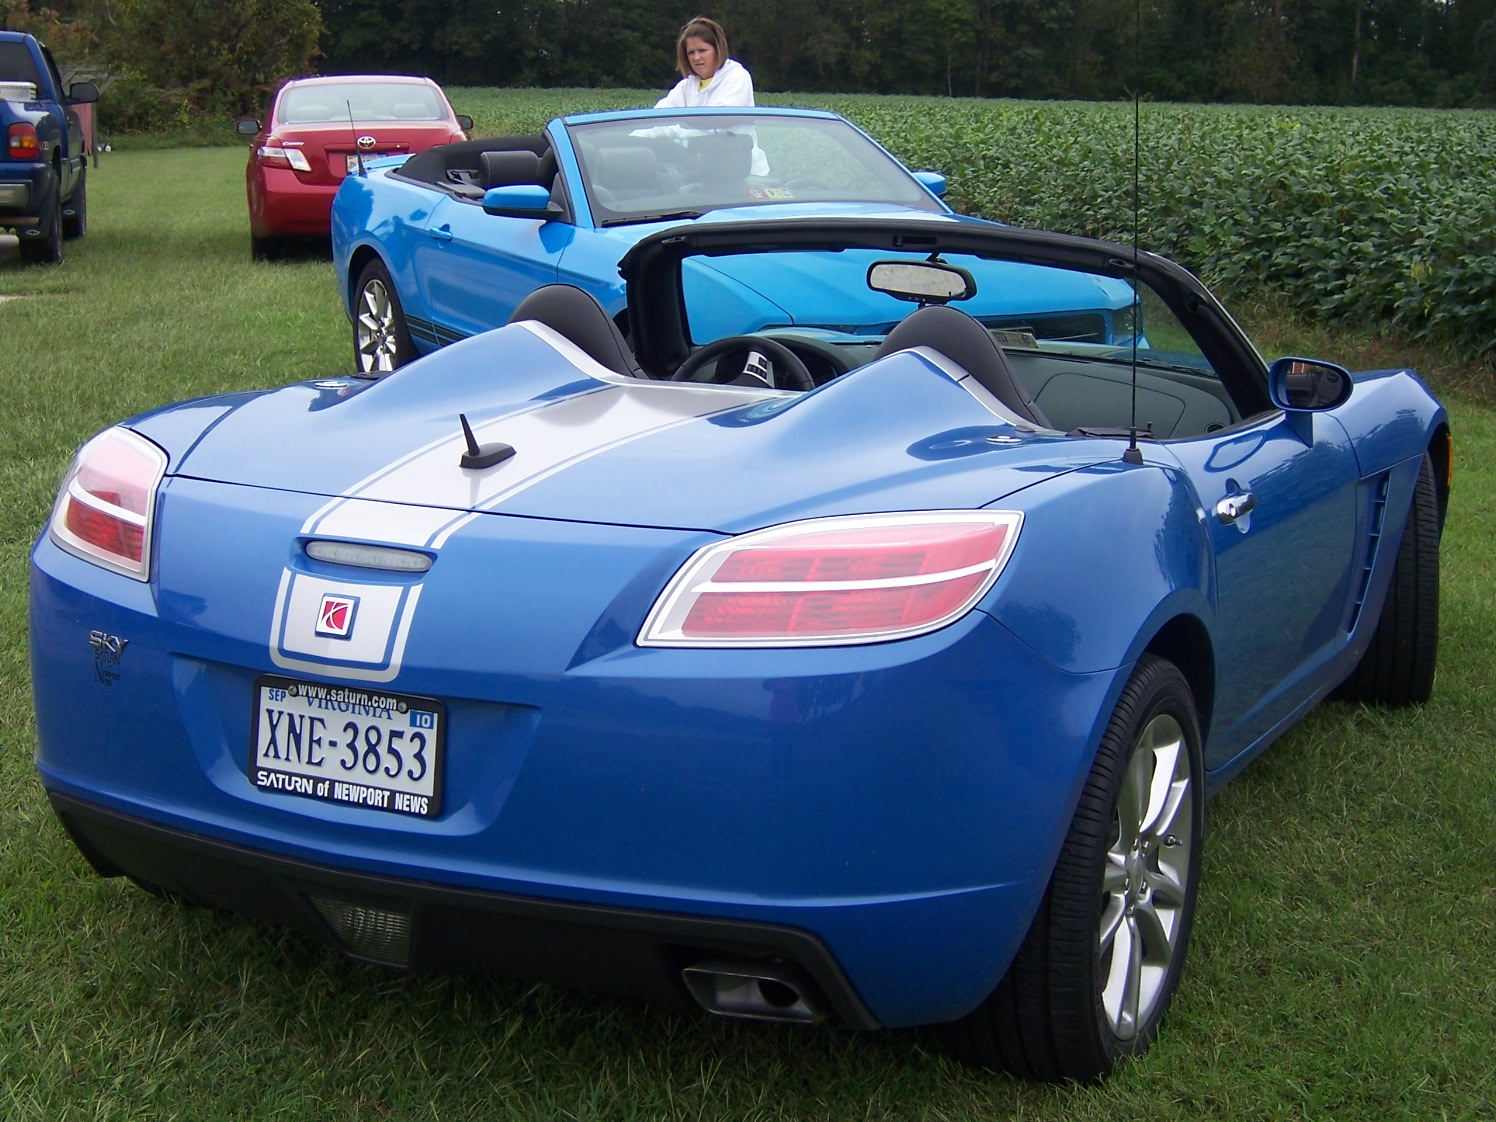 2009 saturn sky hydro blue limited edition car reviews 2018. Black Bedroom Furniture Sets. Home Design Ideas